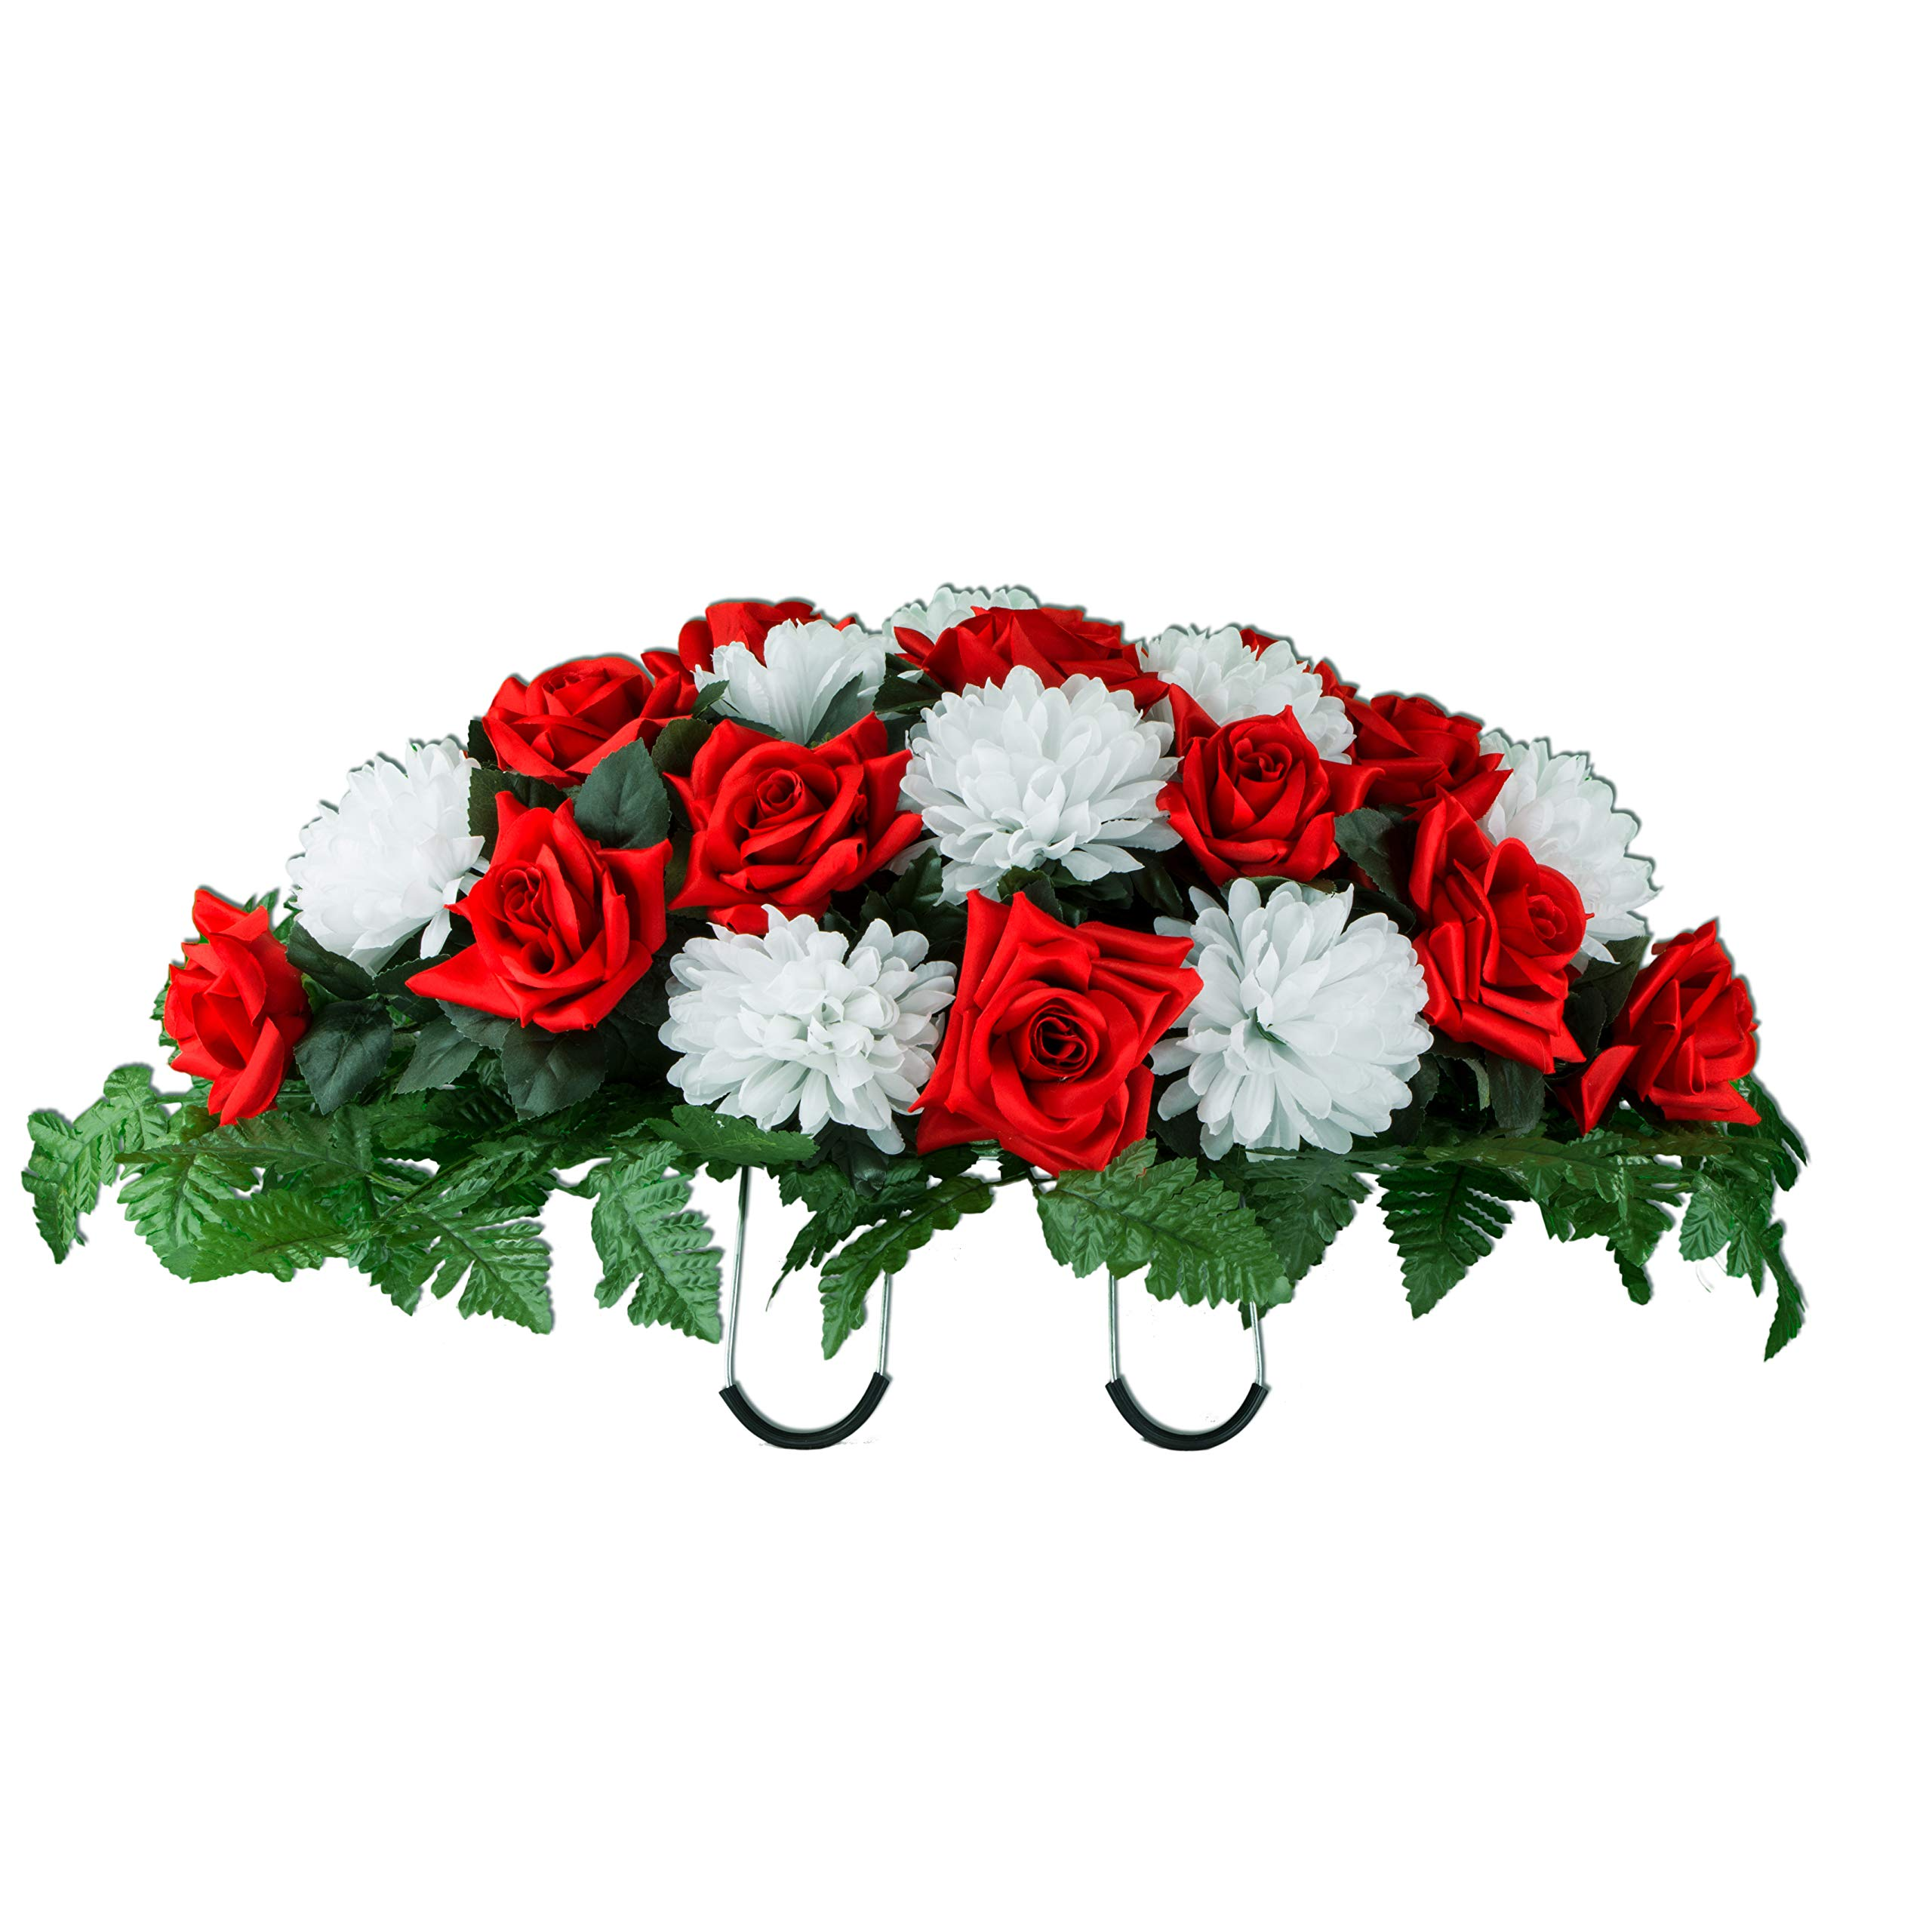 Sympathy-Silks-Artificial-Cemetery-Flowers-Saddle-Arrangement-Red-Rose-White-Mums-Silk-Fake-Flowers-for-Outdoor-Grave-Decorations-Non-Bleed-Colors-Easy-Fit